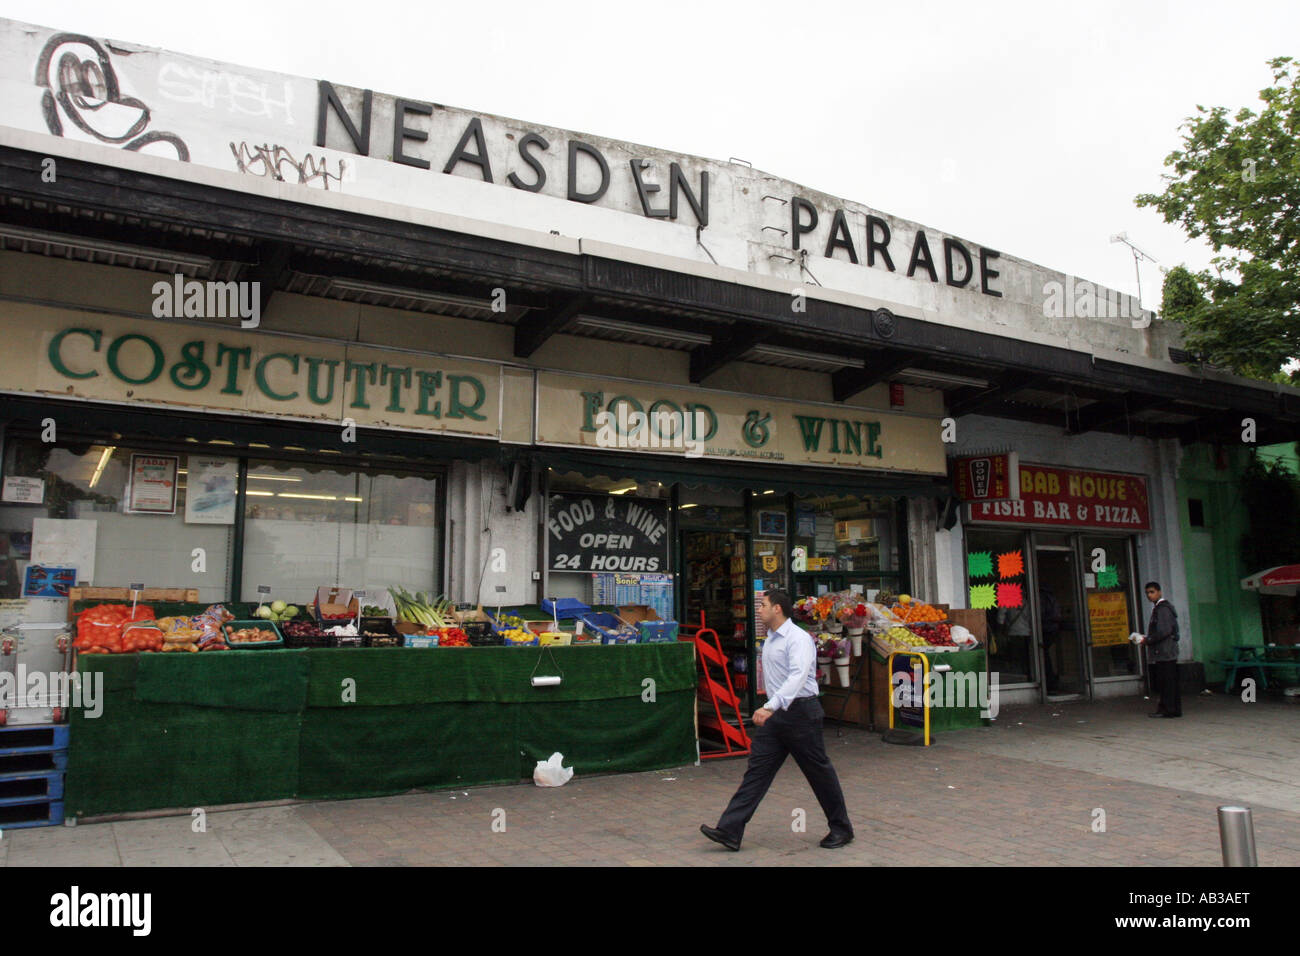 Neasden Shopping Parade, North west London - Stock Image